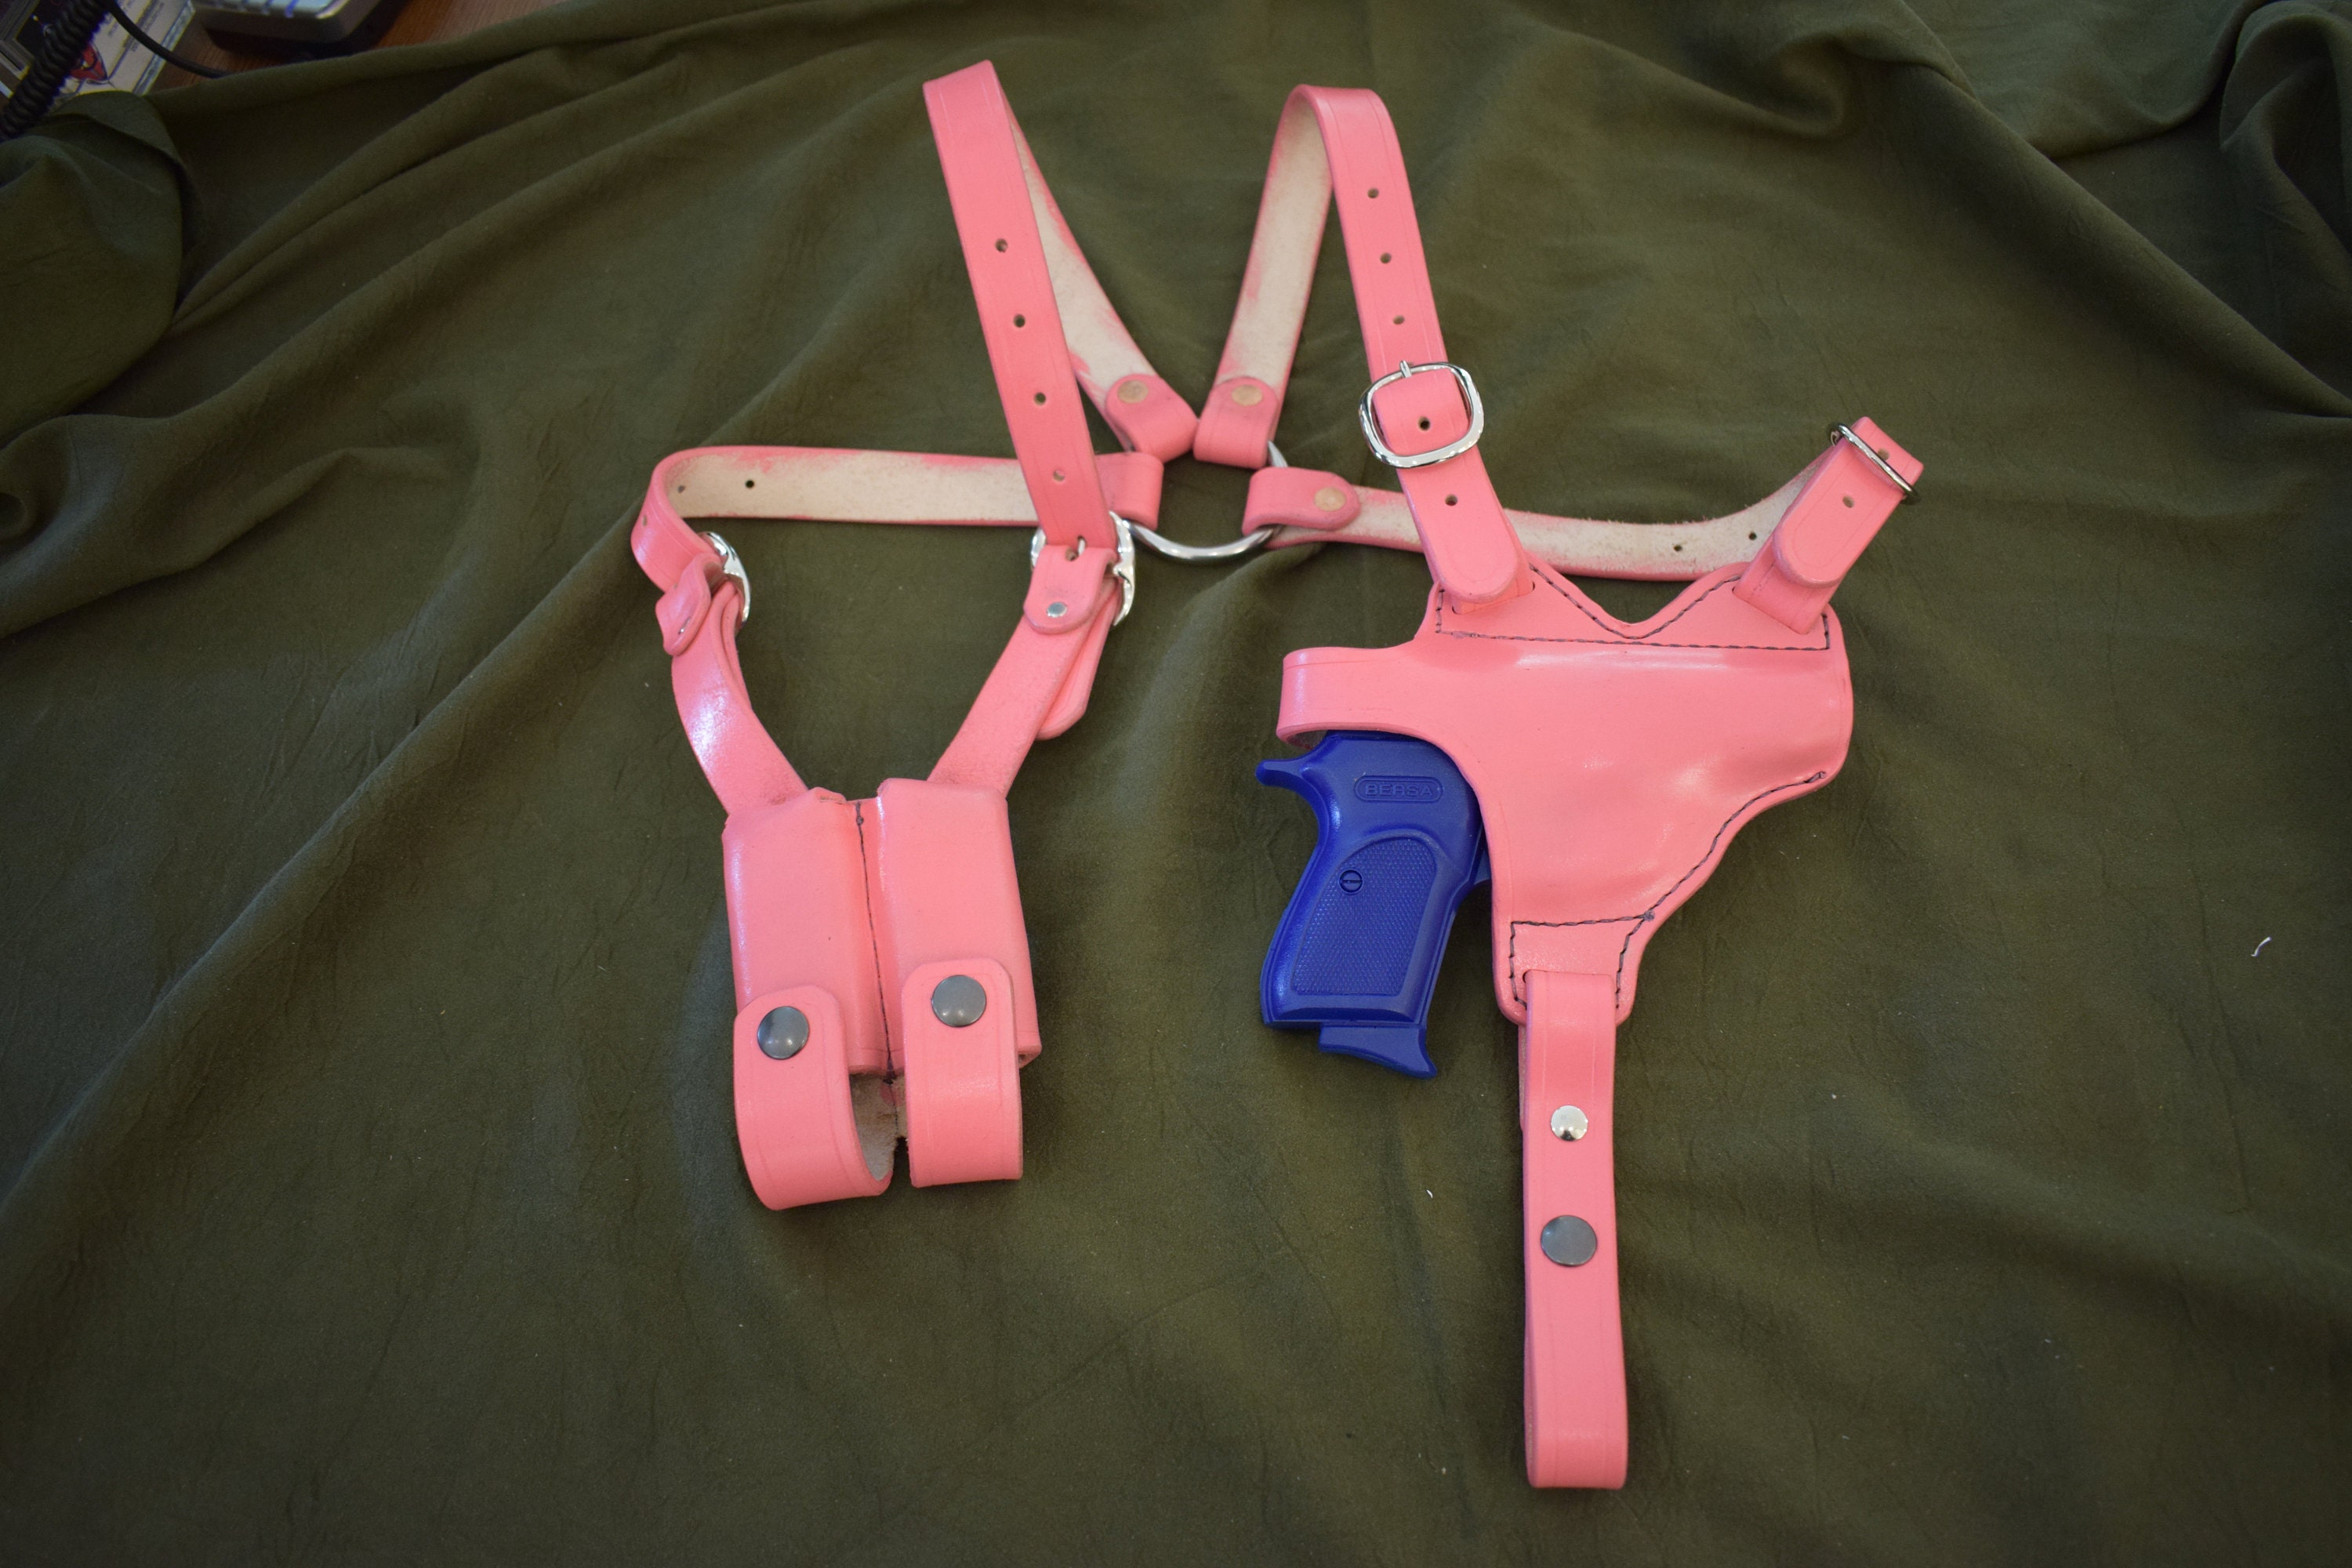 A hot pink leather shoulder holster